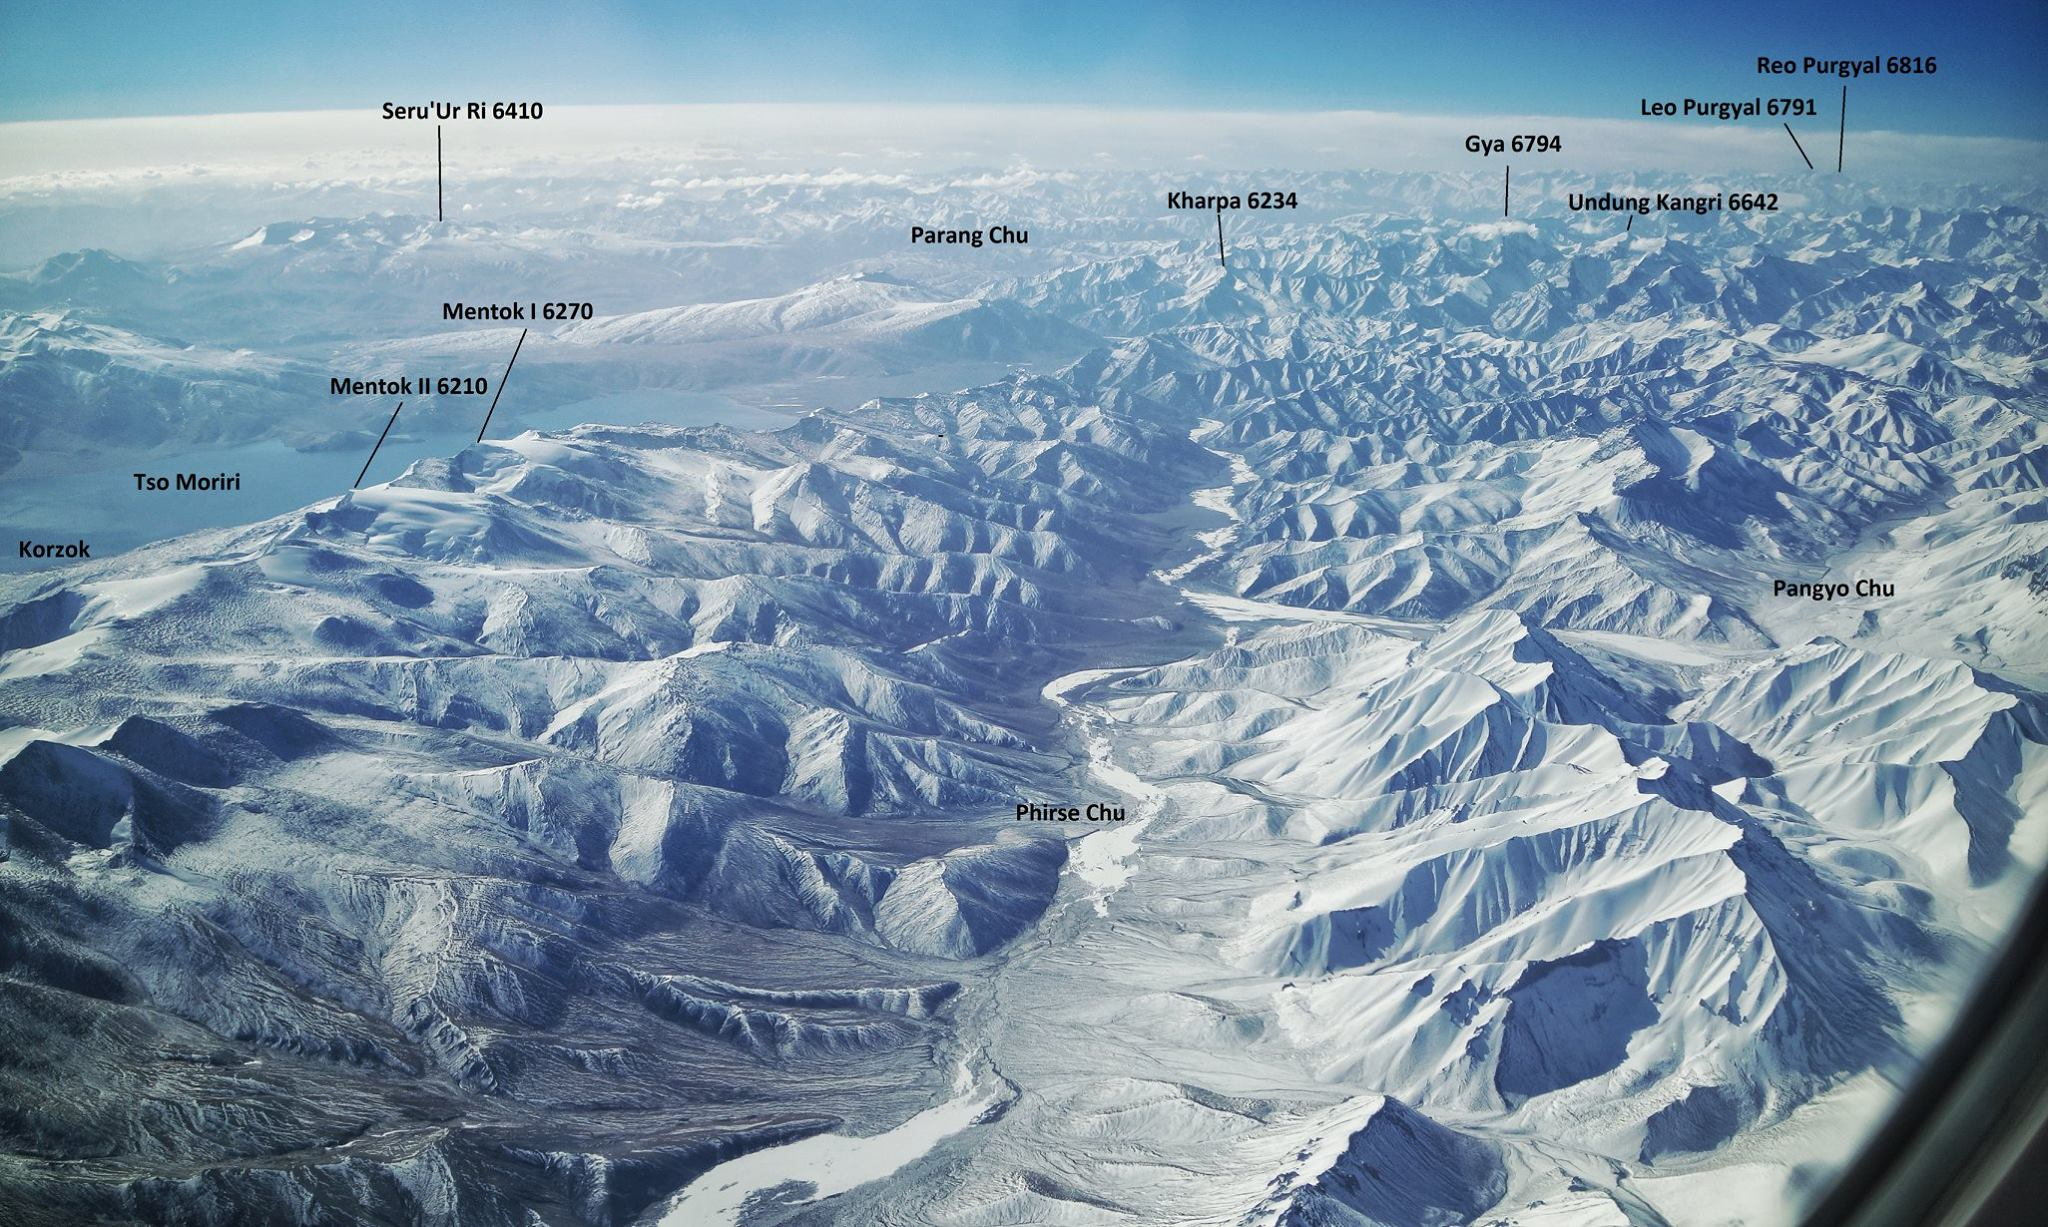 The transition between the Great Himalayan Range and the Zanskar Range as seen from a flight.